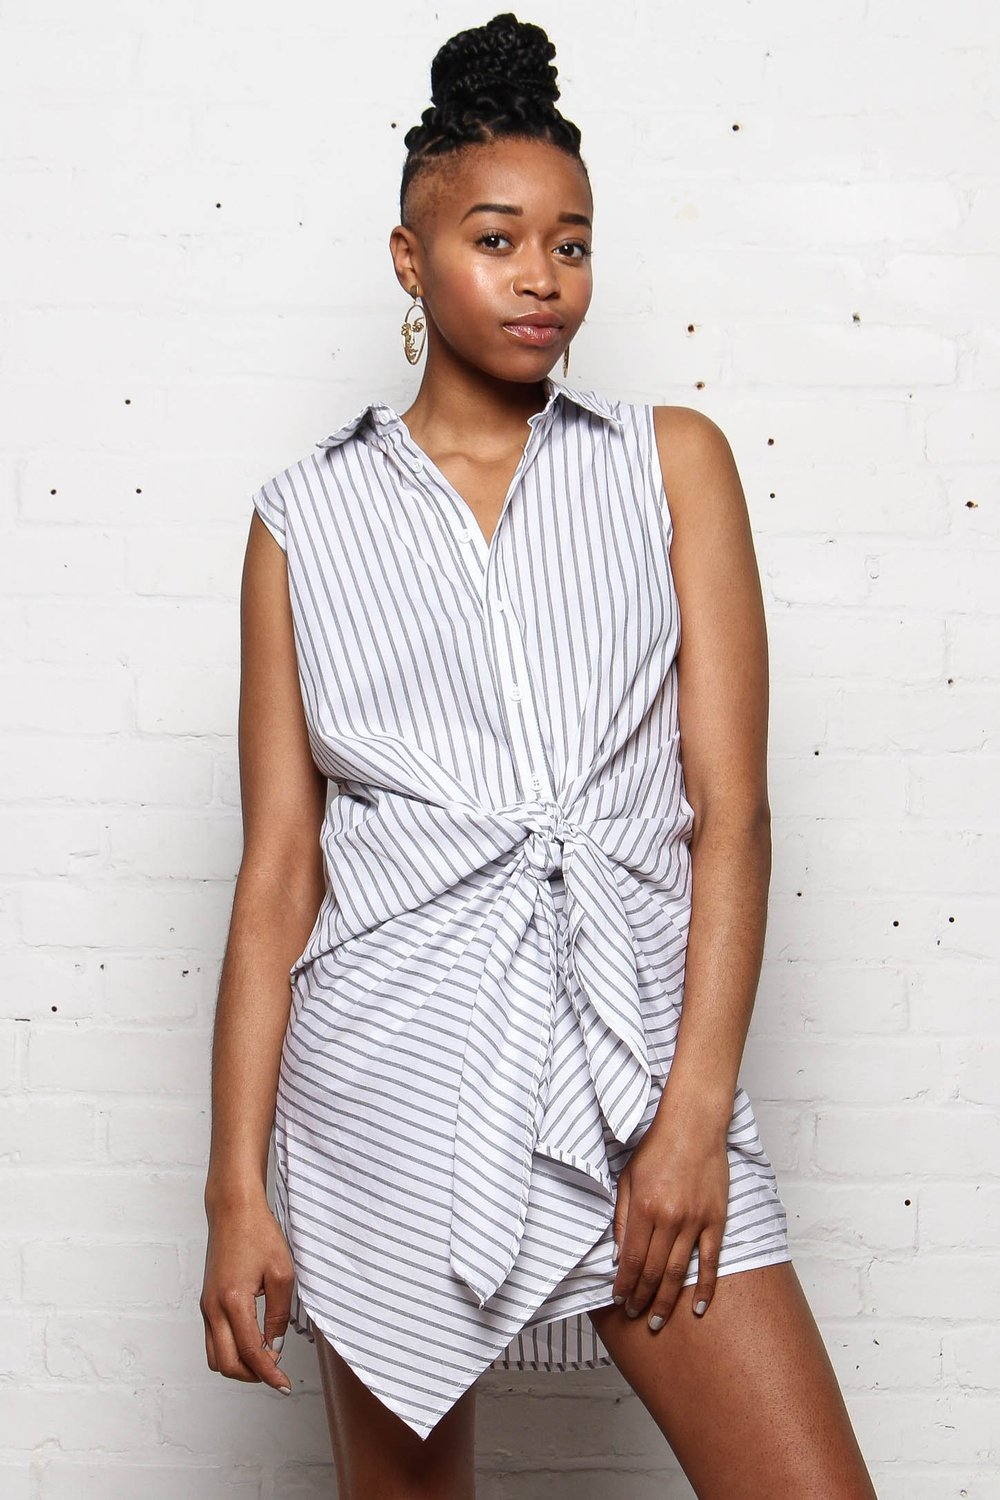 https://www.shopcalico.com/collections/new/products/reverse-when-we-were-young-tie-front-shirt-dress-stripe